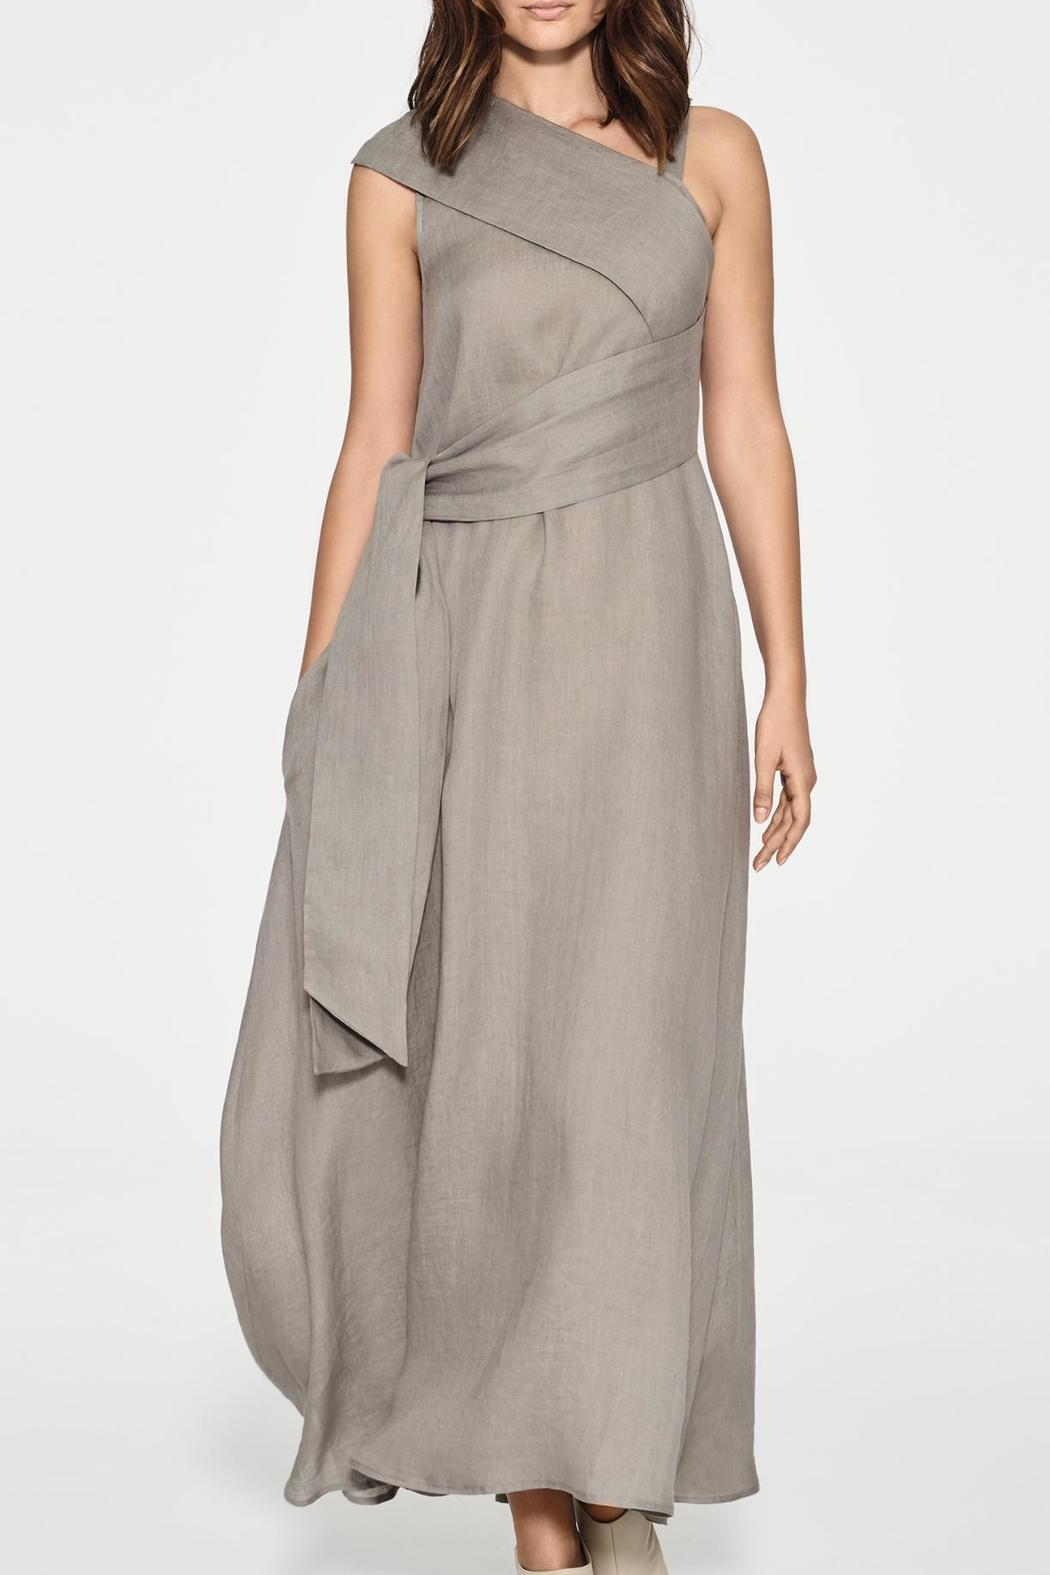 1b59e9a088d Sarah Pacini Linen Maxi Dress from Canada by The Oyster — Shoptiques